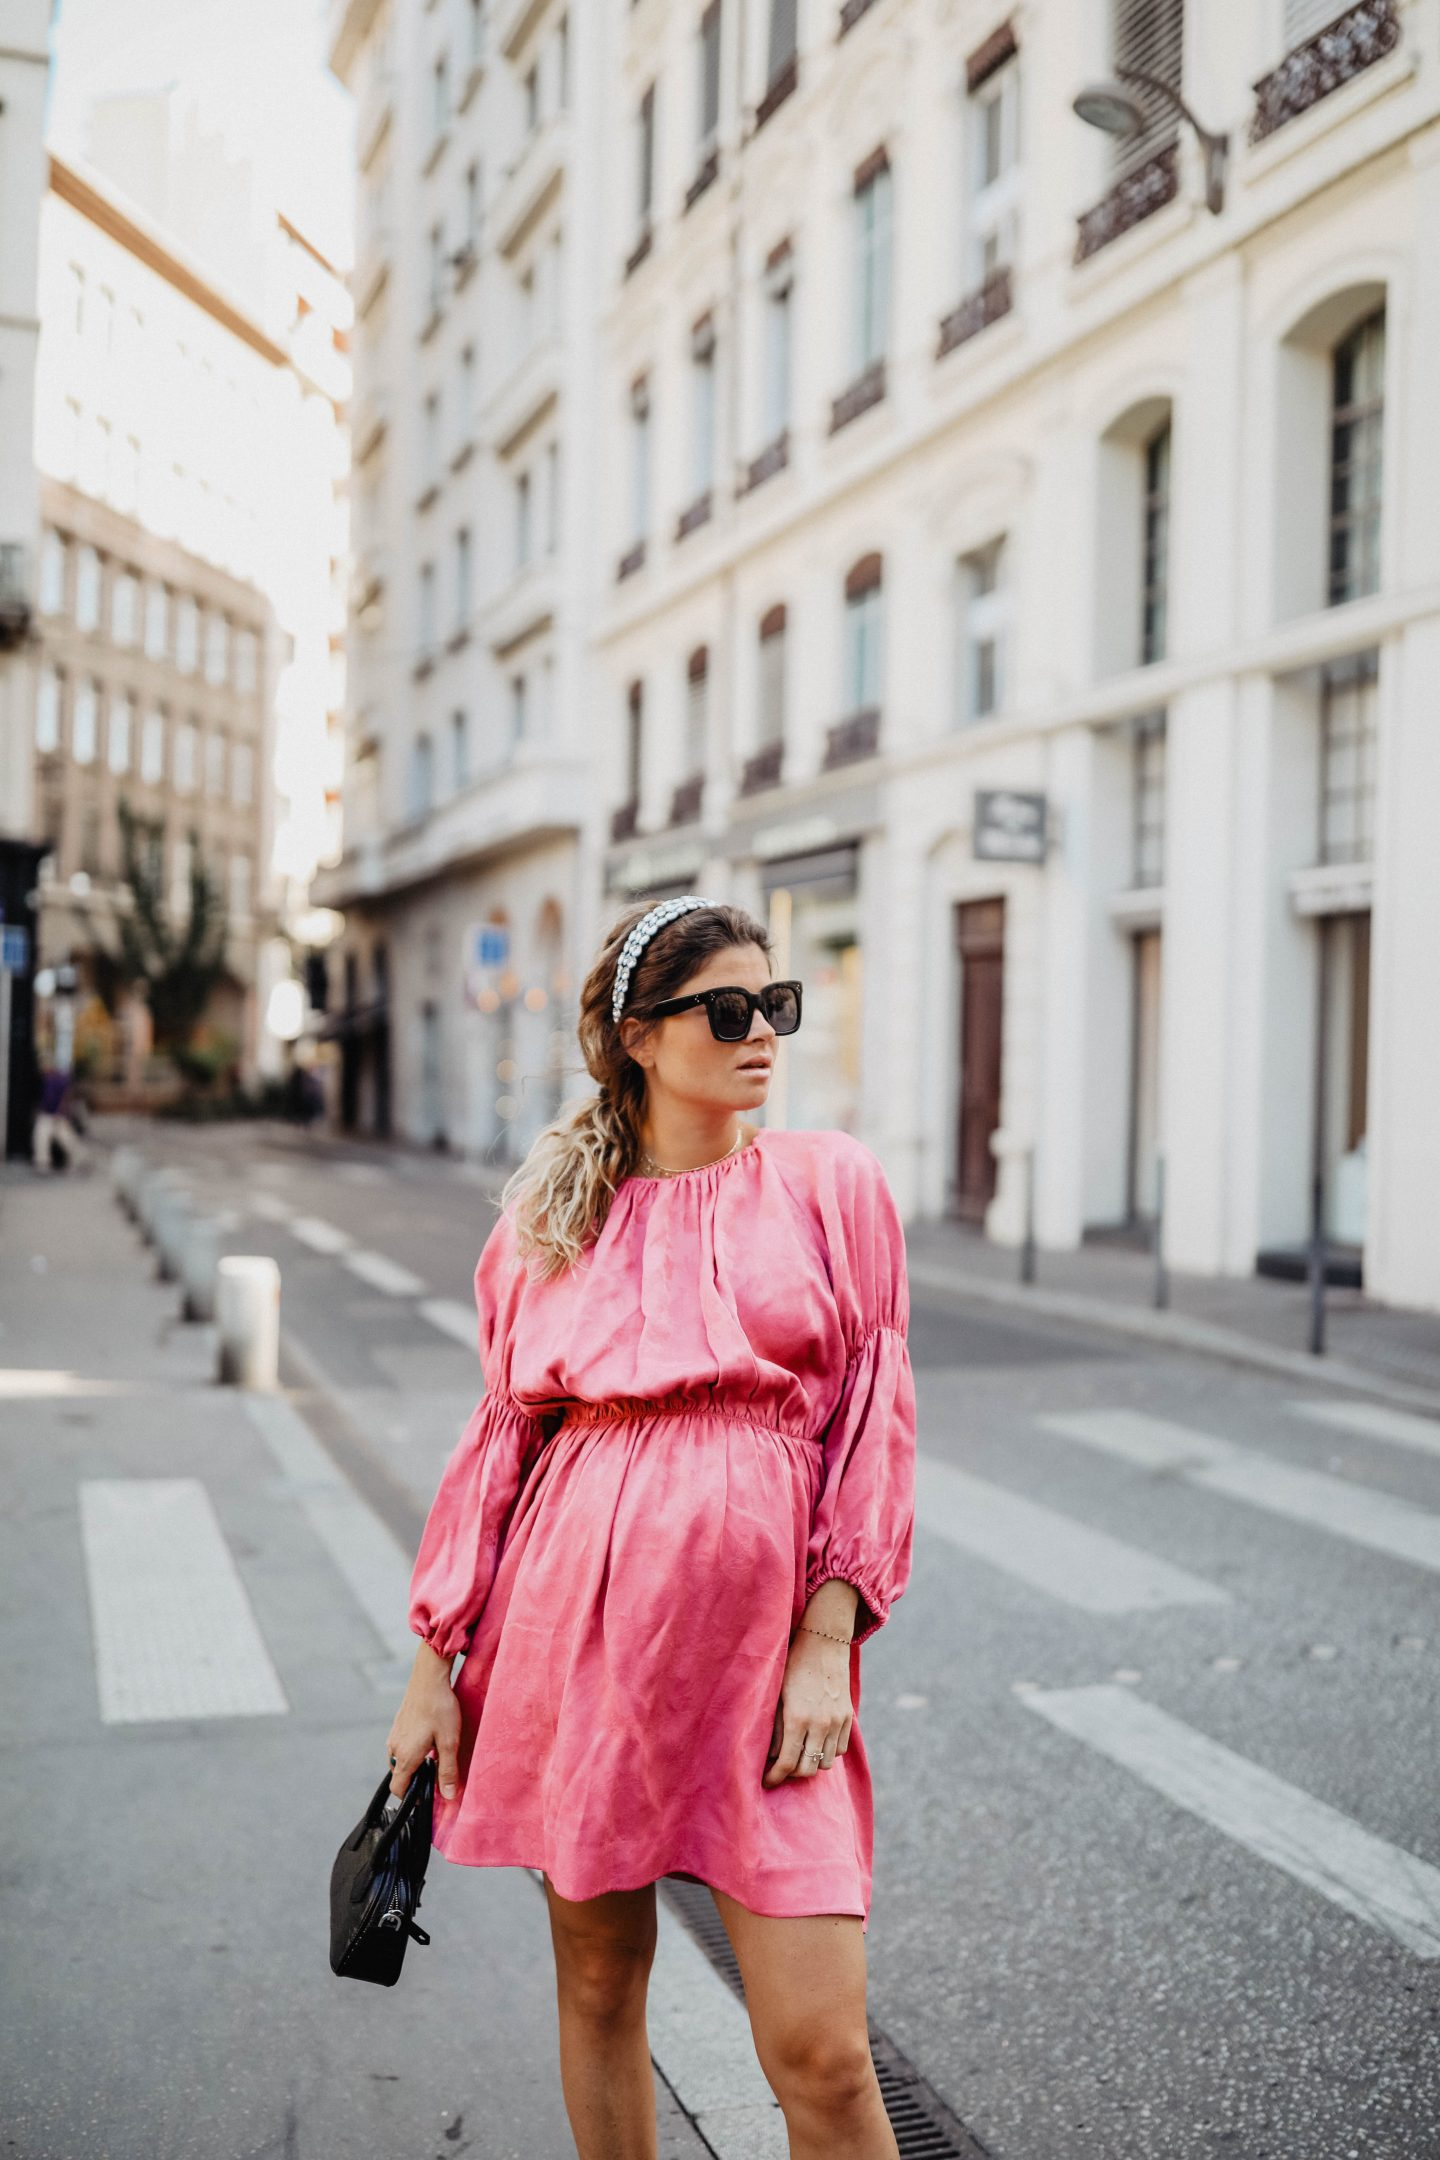 Robe fushia marieandmood blog mode